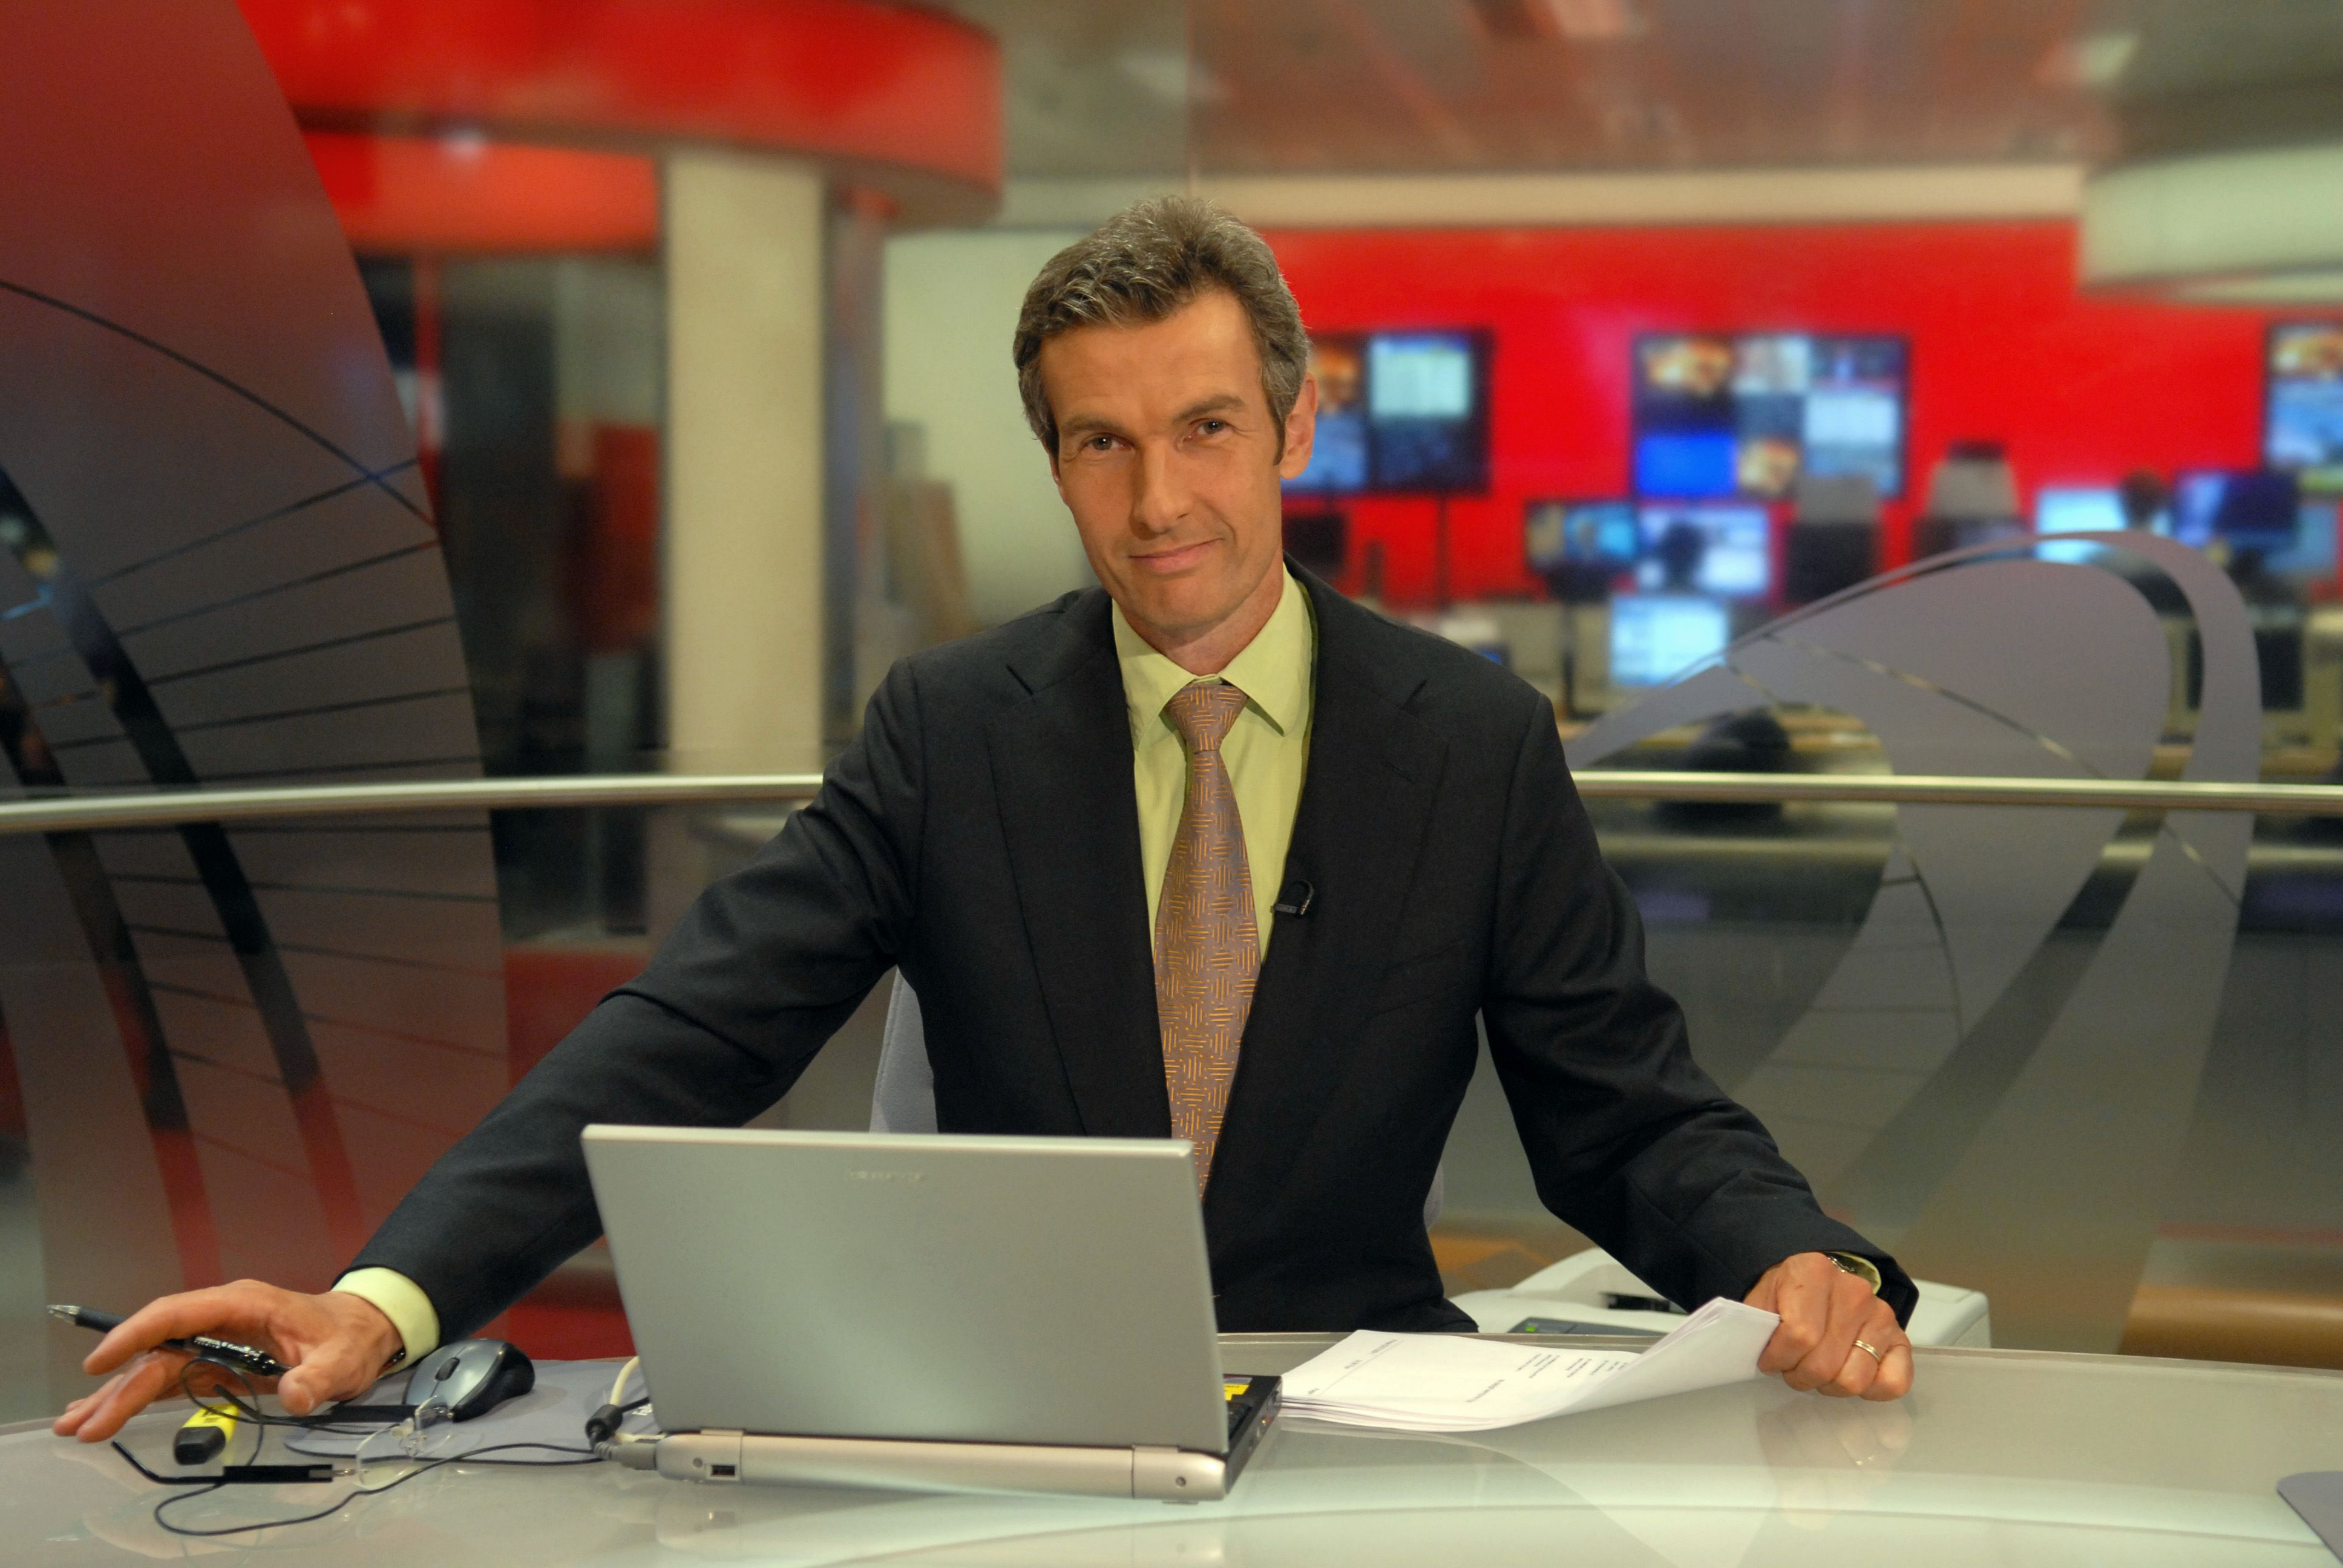 Mike Embley Bbc World News Bbc World News Tv News Viral Videos Funny